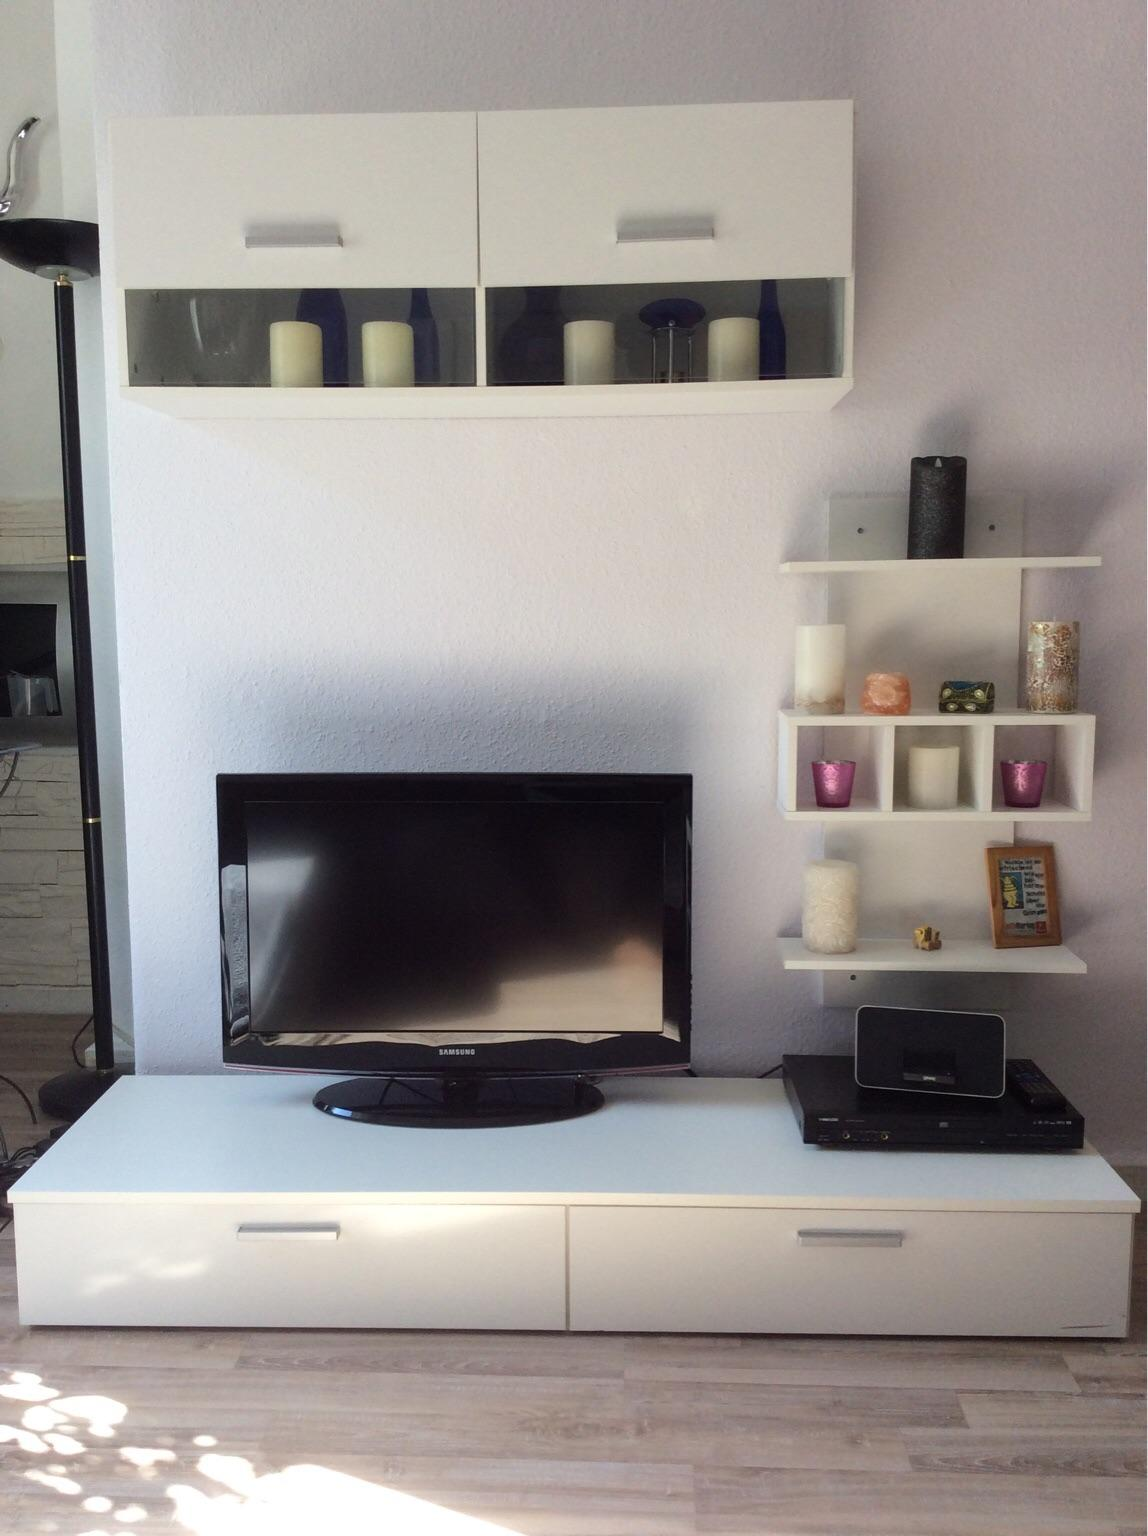 Wohnzimmer Tv Möbel Vitrine Lowboard Regal In 44139 Dortmund For 50 00 For Sale Shpock